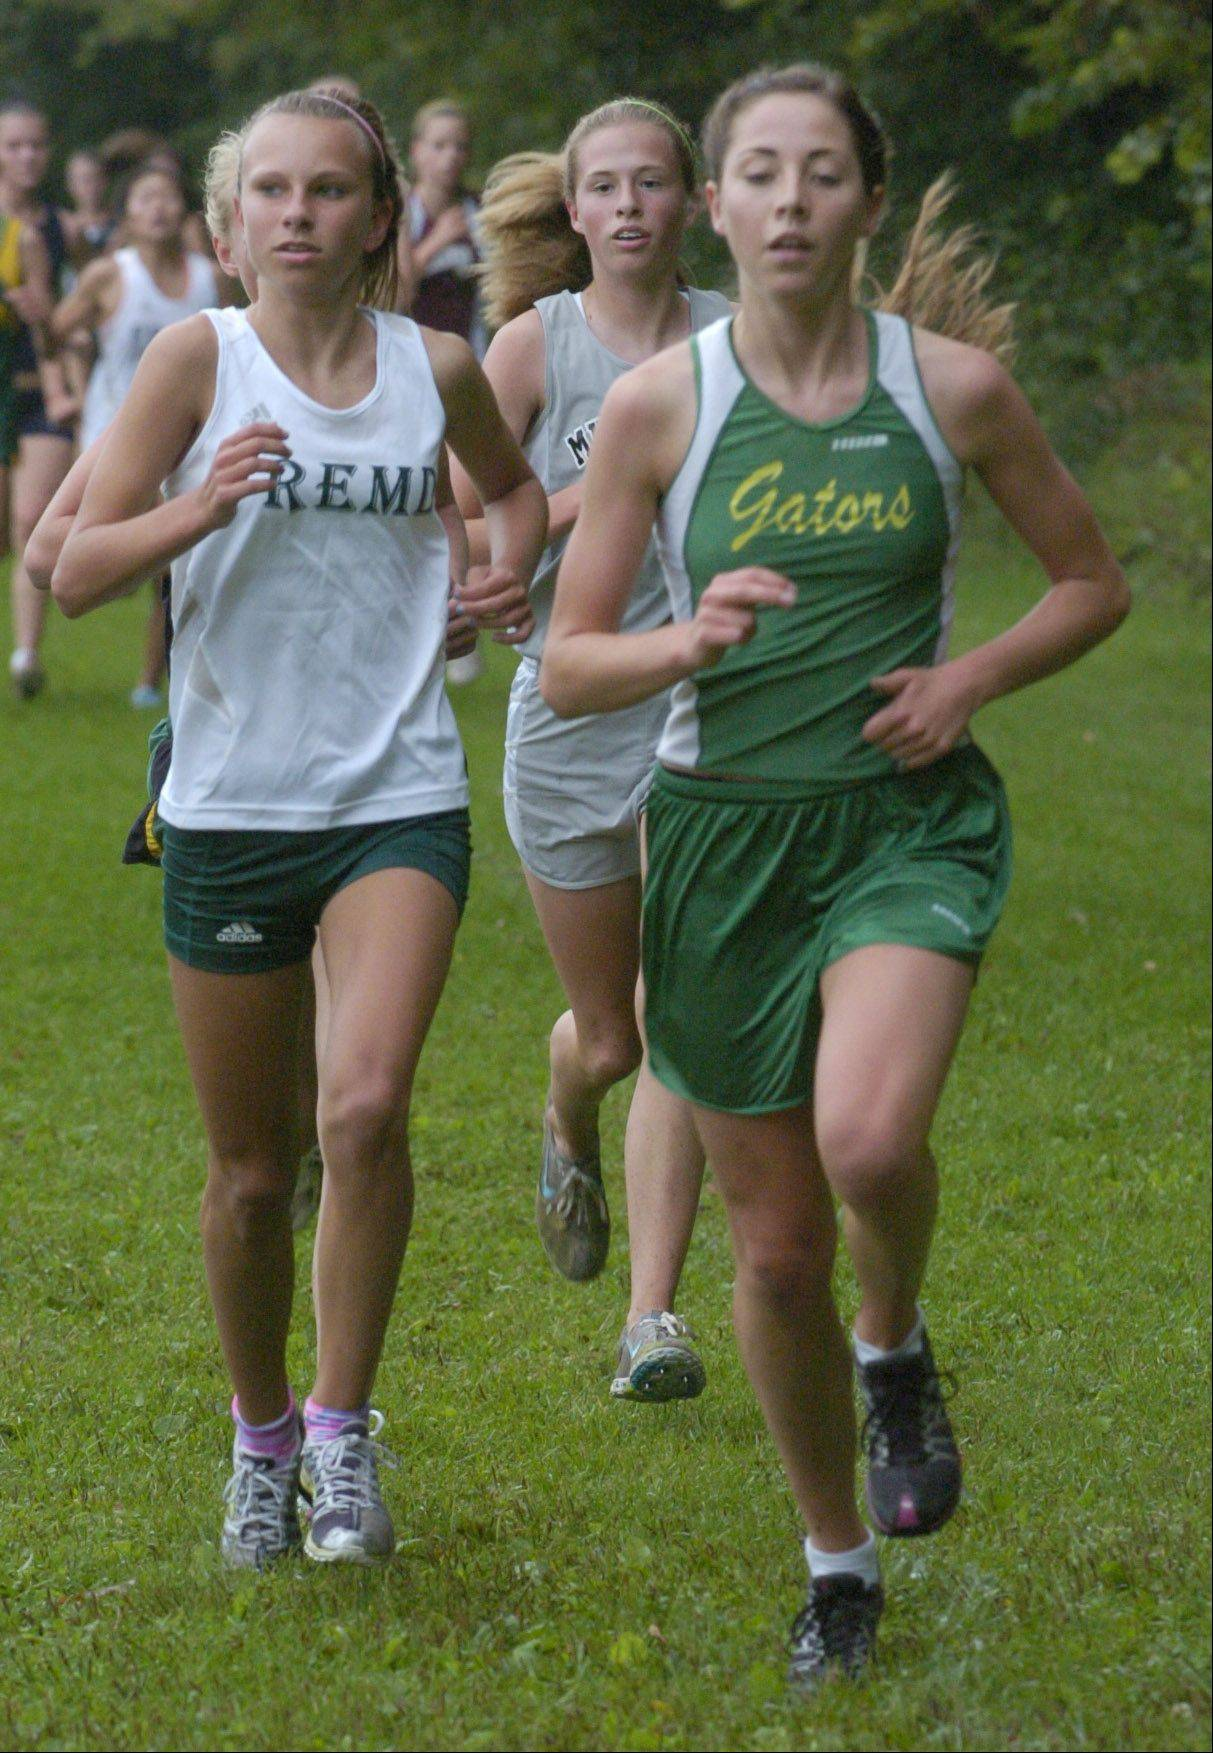 Fremd's Kelly Breen, left, runs alongside Crystal Lake South's Marianne Collard during Saturday's cross country meet at Warren.